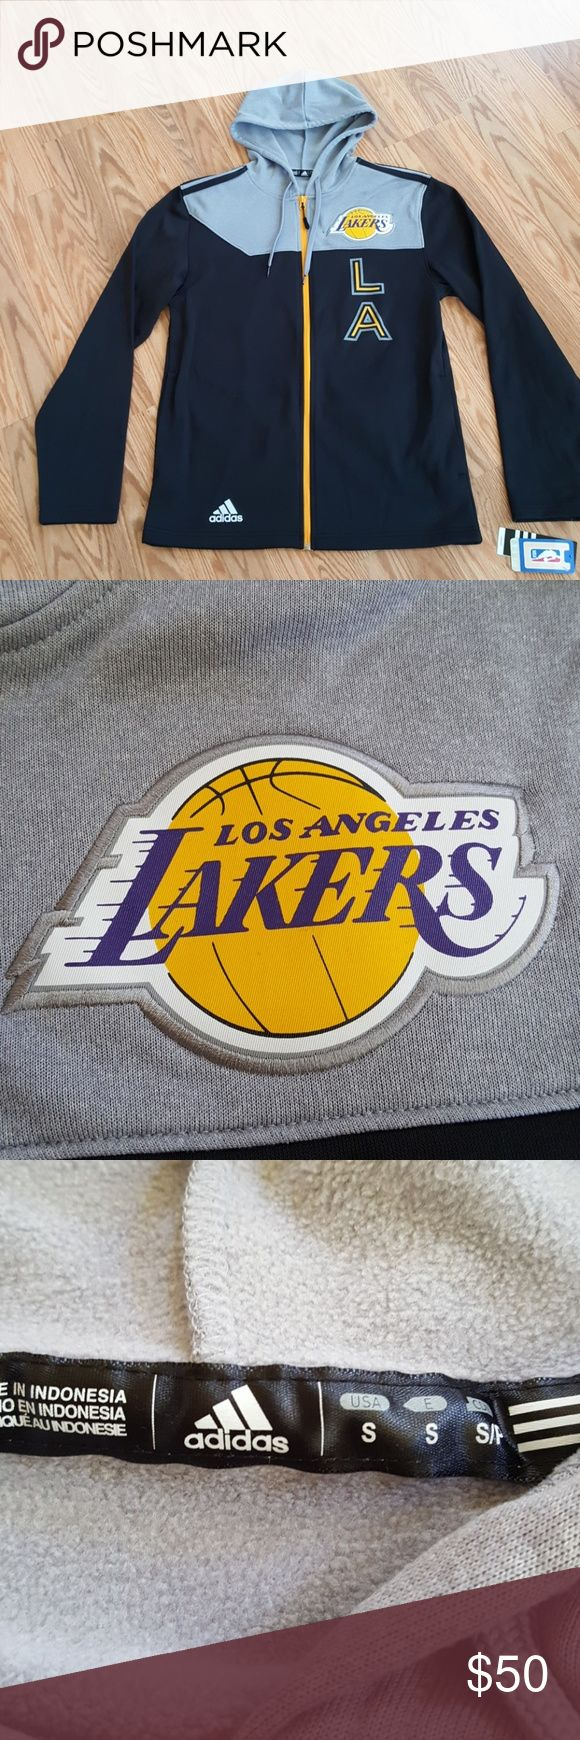 Lakers Hoodie Jacket Adidas NWT Lakers hoodie by Adidas. This hoodie is not heavy, but supposed to keep you warm and dry. adidas Jackets & Coats